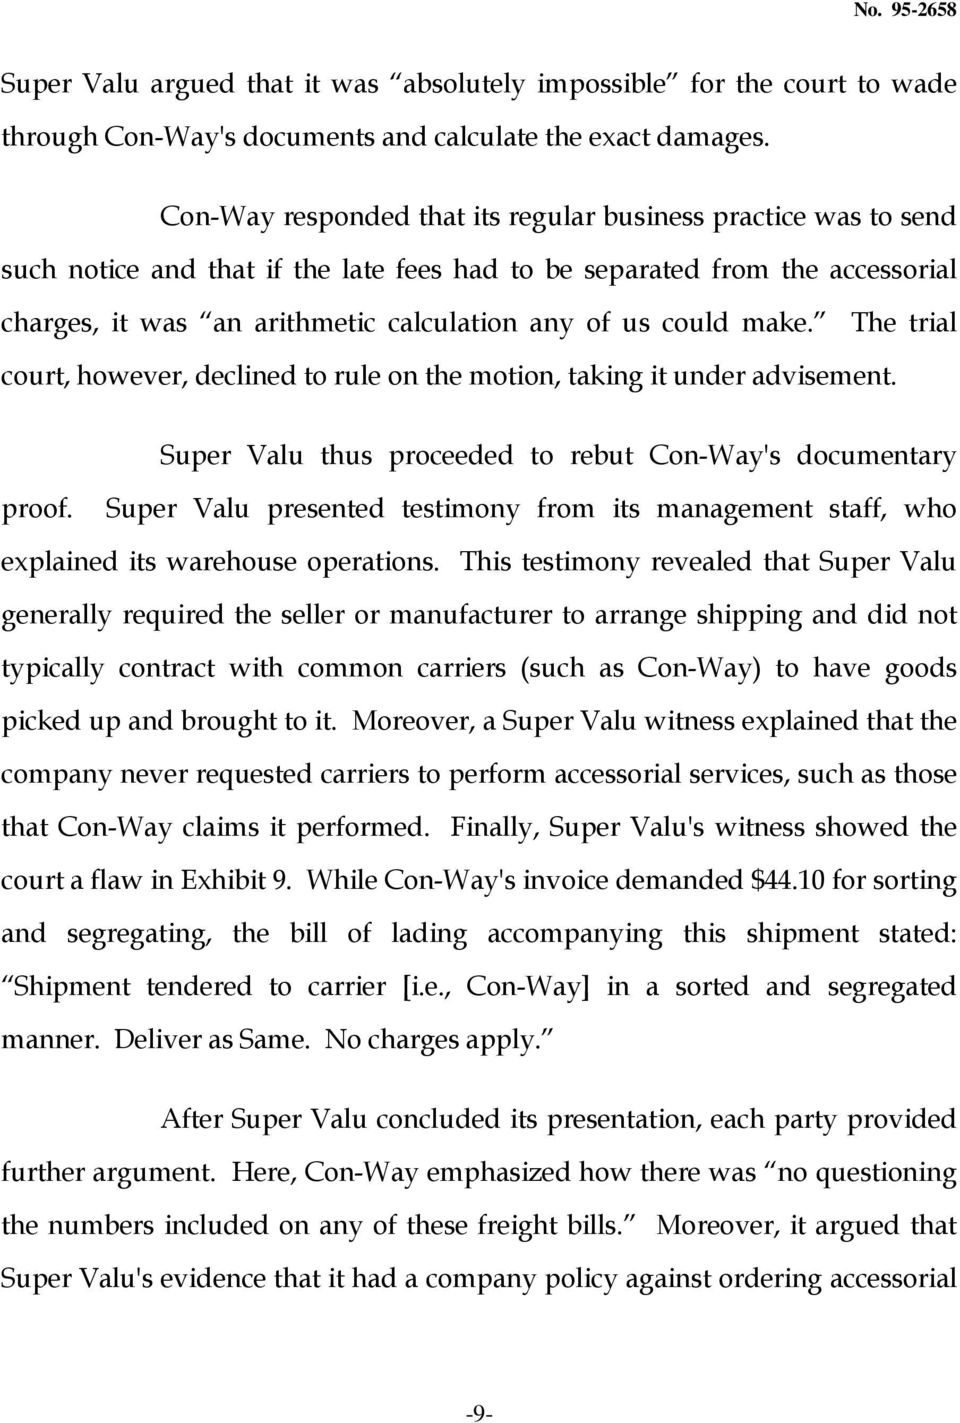 could make. The trial court, however, declined to rule on the motion, taking it under advisement. Super Valu thus proceeded to rebut Con-Way's documentary proof.